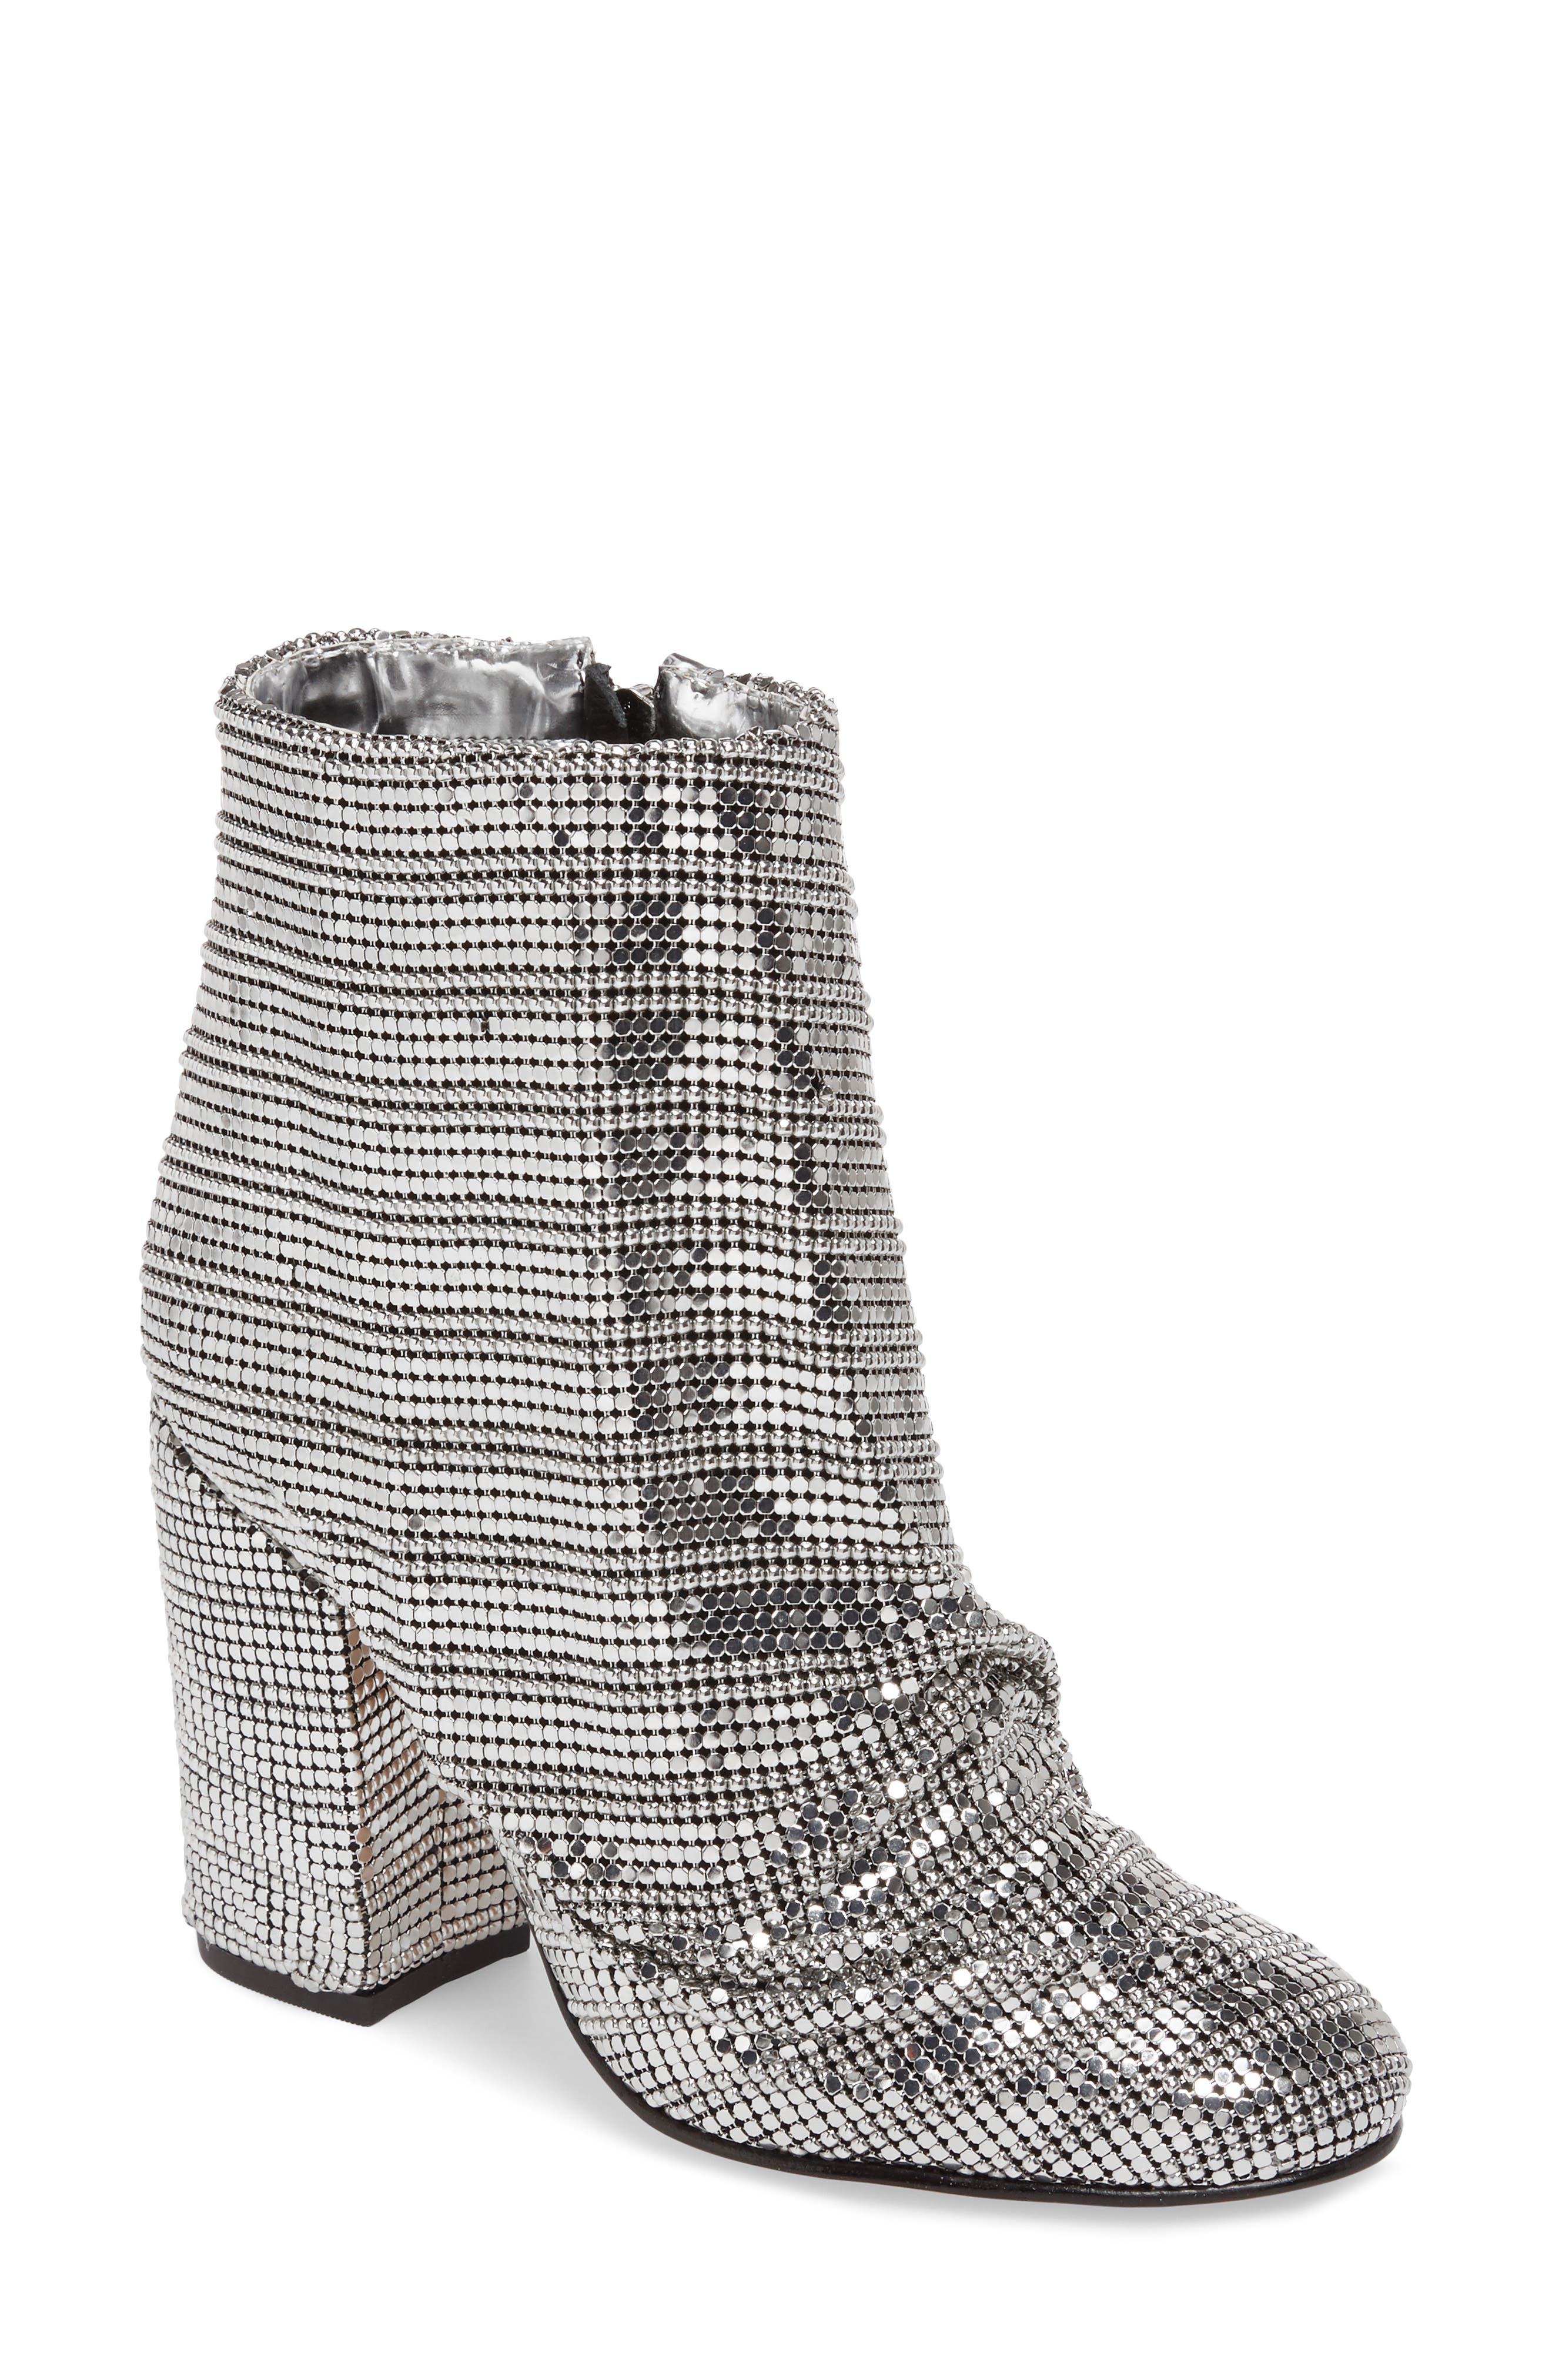 Taise Ruched Mirror Mesh Bootie,                             Main thumbnail 1, color,                             100